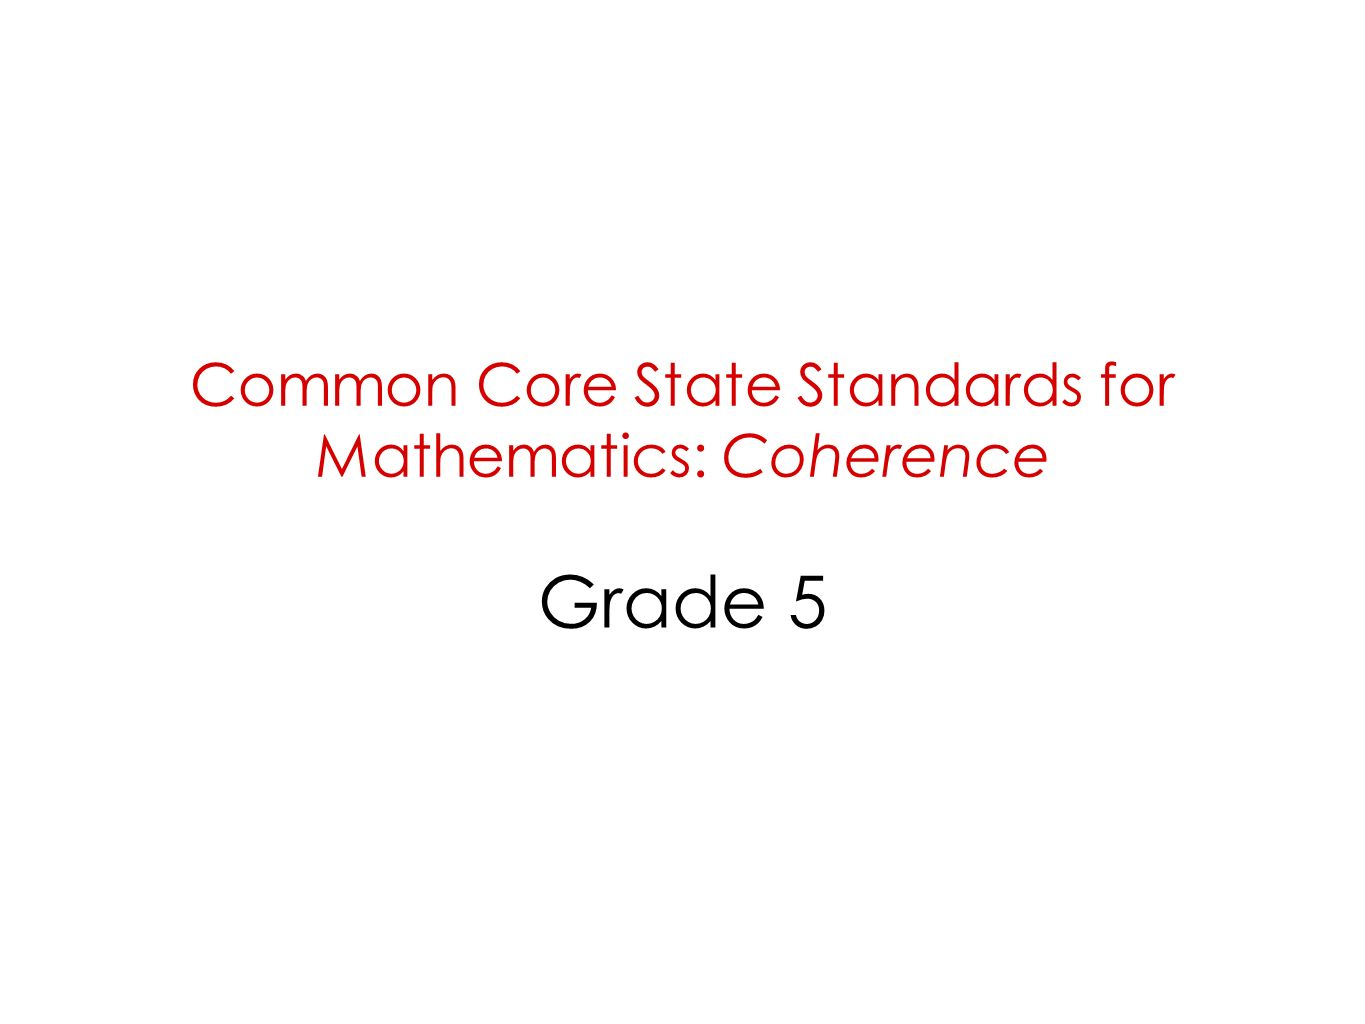 Common Core State Standards for Mathematics: Coherence Grade 5